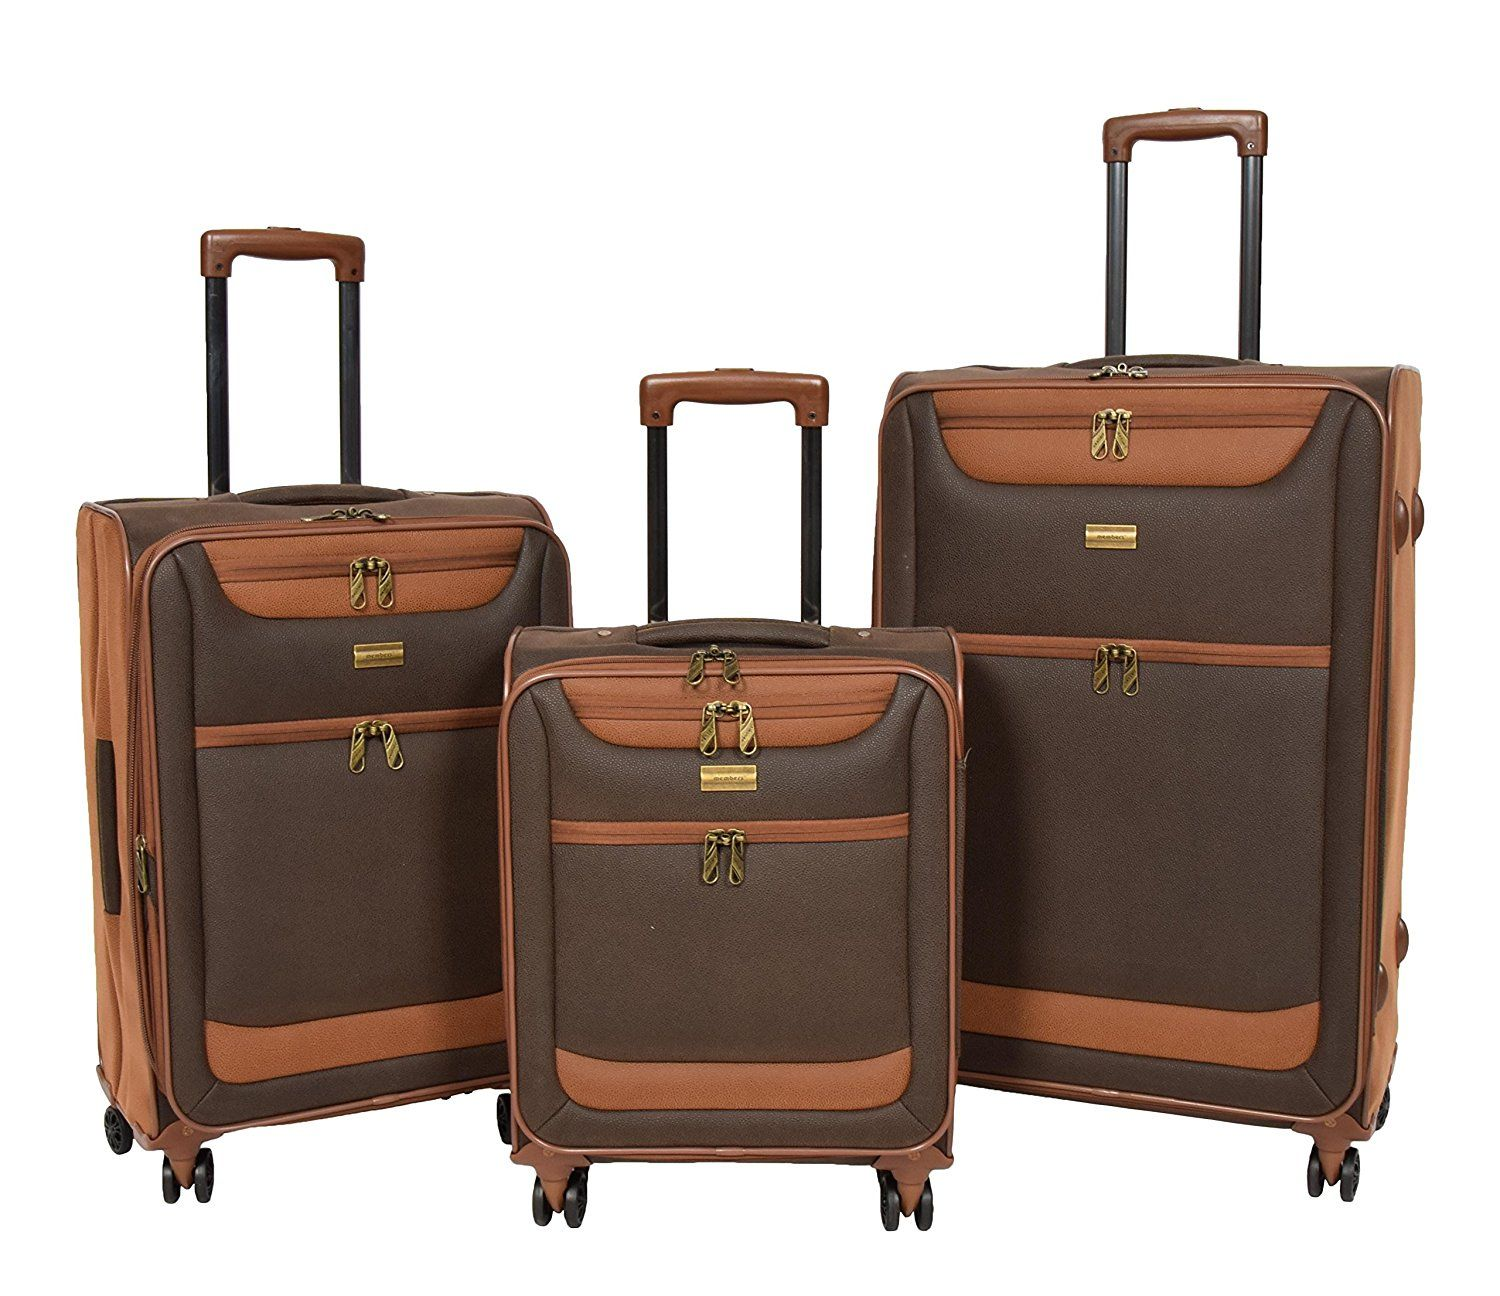 Members Boston léger imitation daim QUATRE ROUES tournantes baggage - Marron, Medium - 67 x 42 x 28/31 cm - 3.4 kg